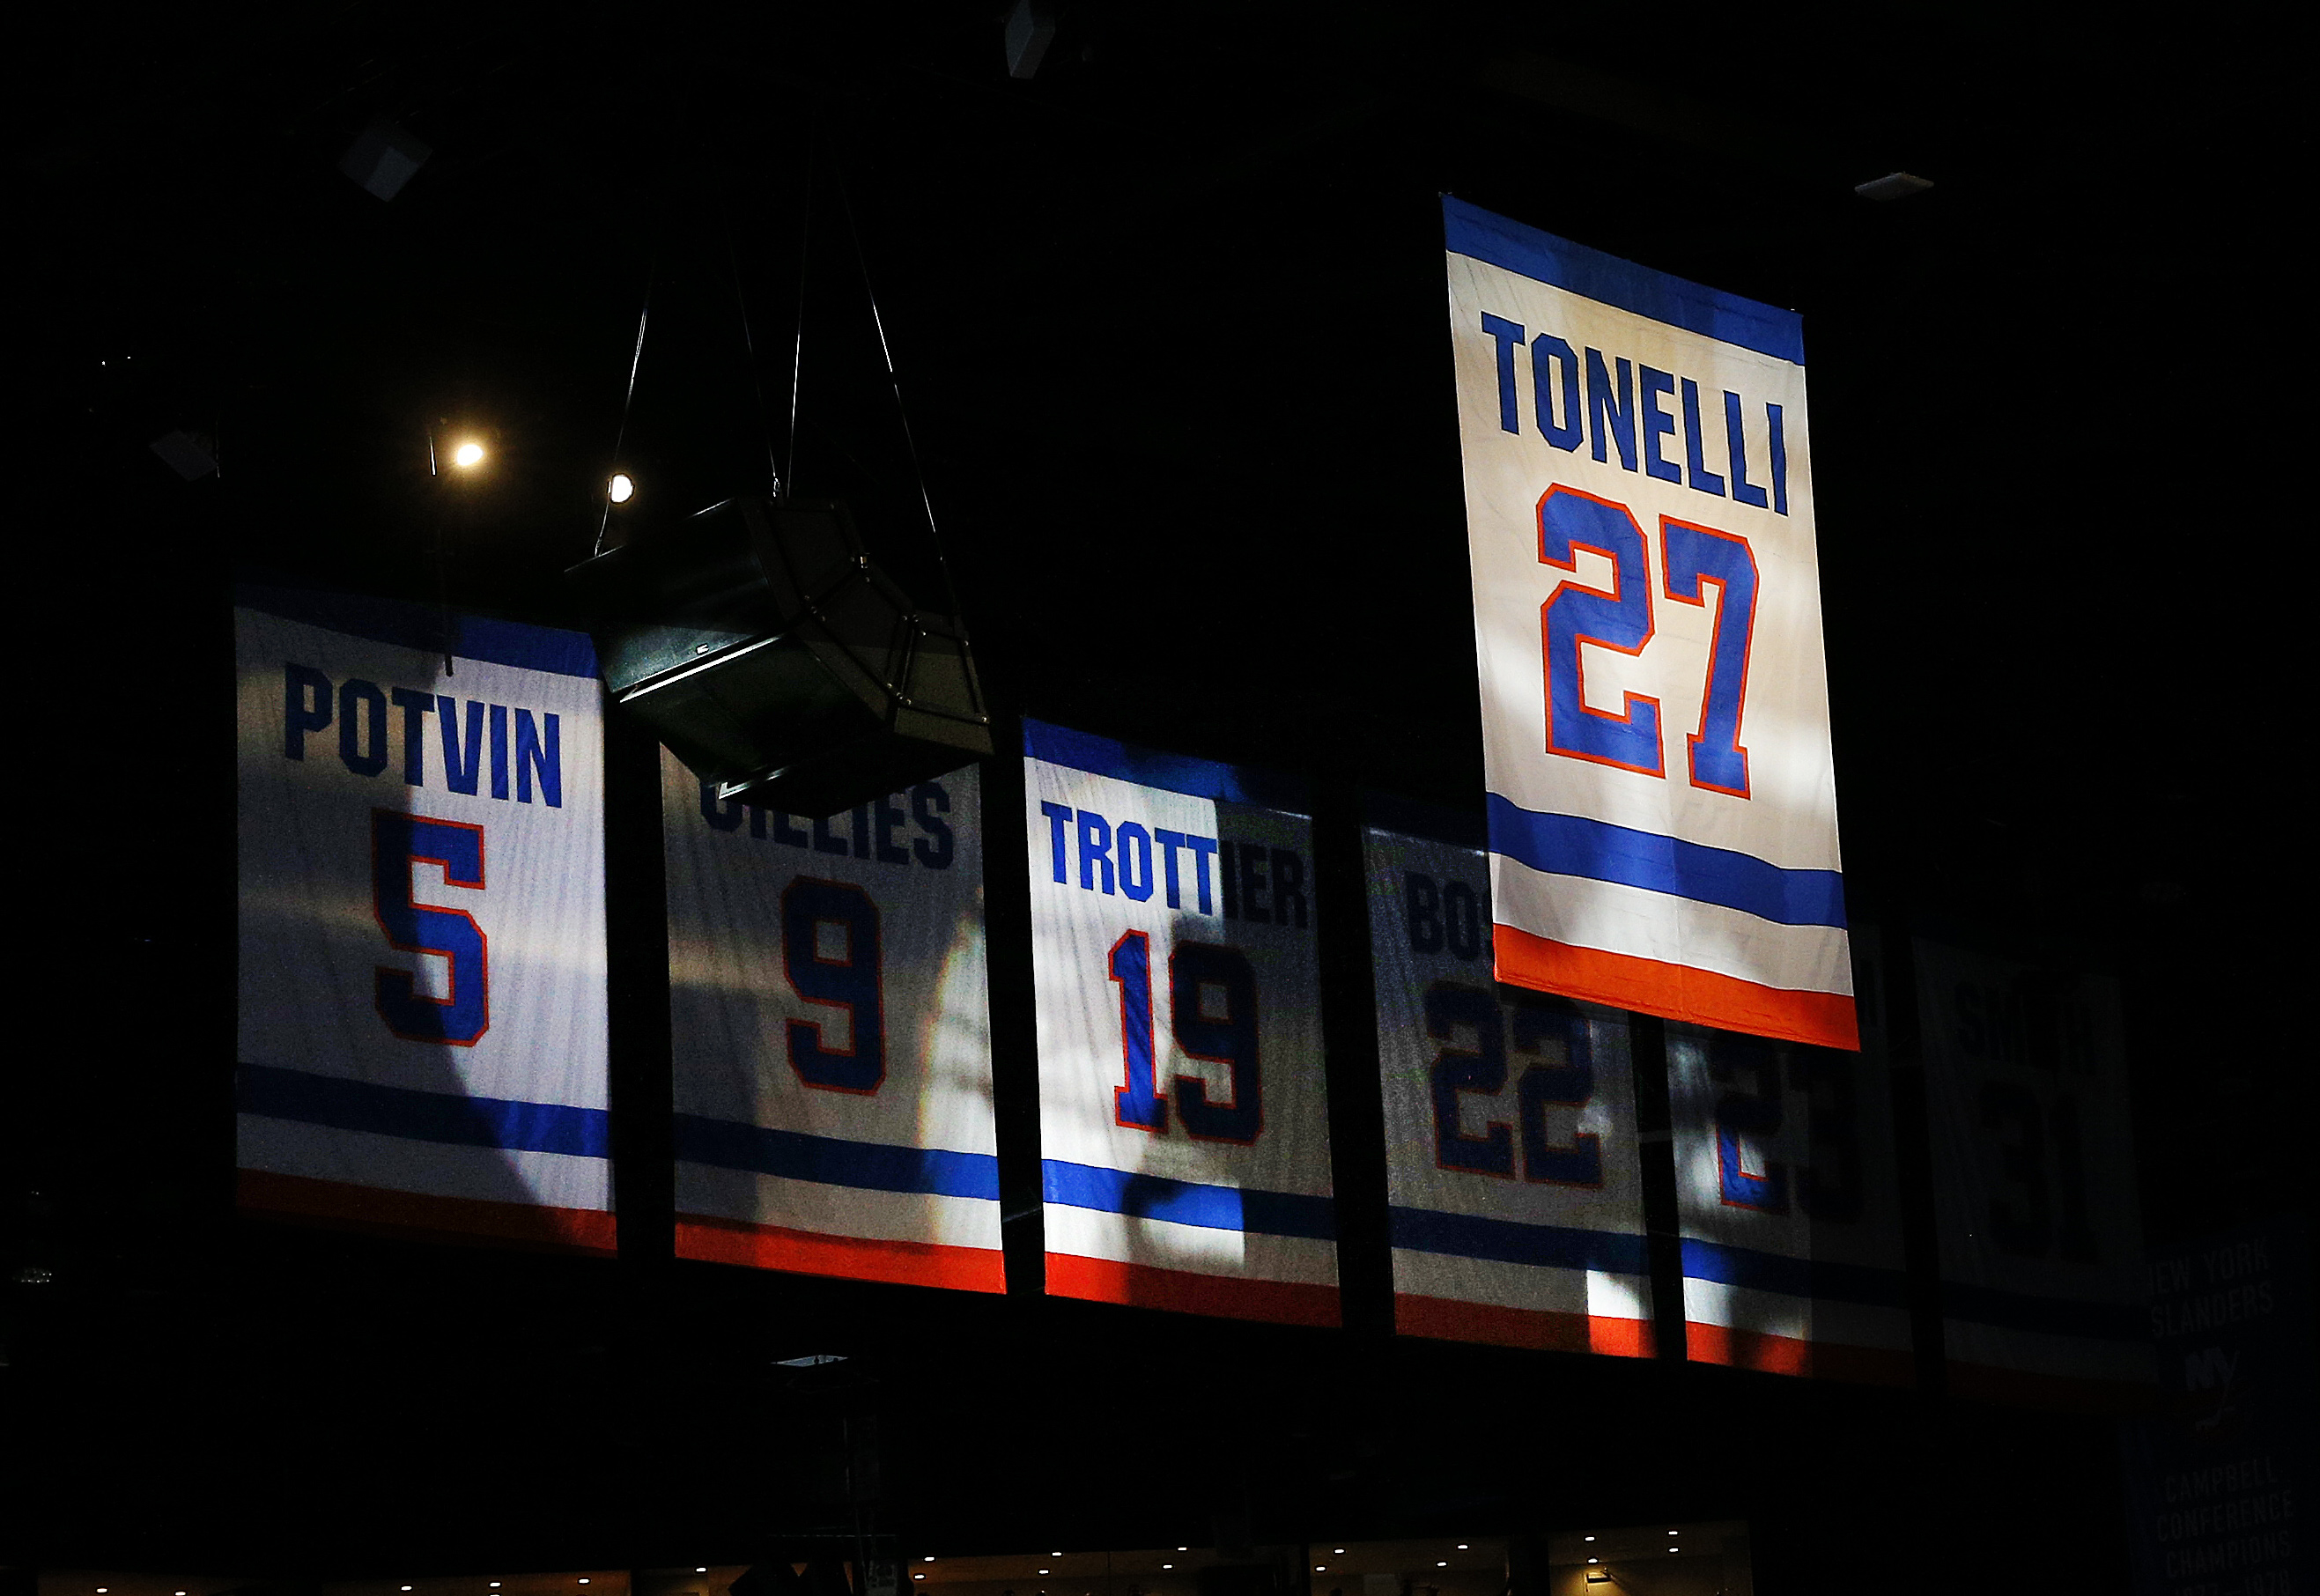 Feb 21, 2020; Uniondale, New York, USA; The number 27 jersey of New York Islanders former player John Tonelli is lifted to the rafters during a retirement ceremony prior to a game against the Detroit Red Wings at Nassau Veterans Memorial Coliseum. Mandatory Credit: Andy Marlin-USA TODAY Sports